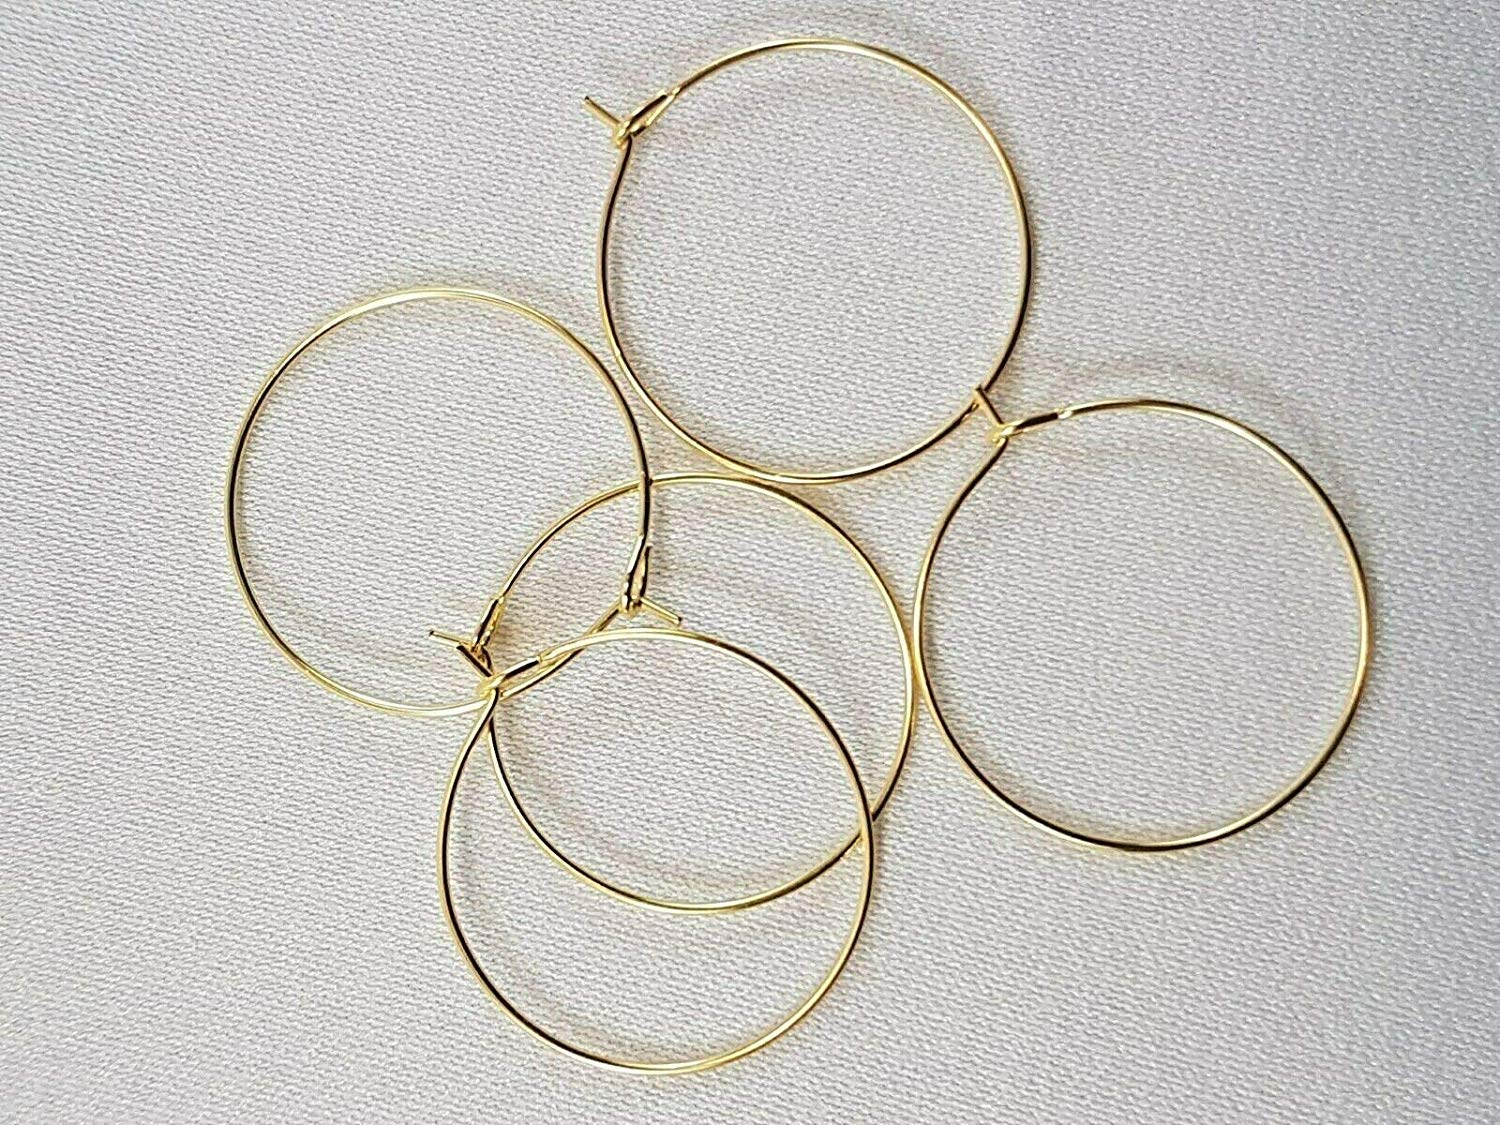 29x25mm Gold Plated Wine Glass Charms Rings//Earrings Hoops Findings Wedding Table. 25, 29x25mm